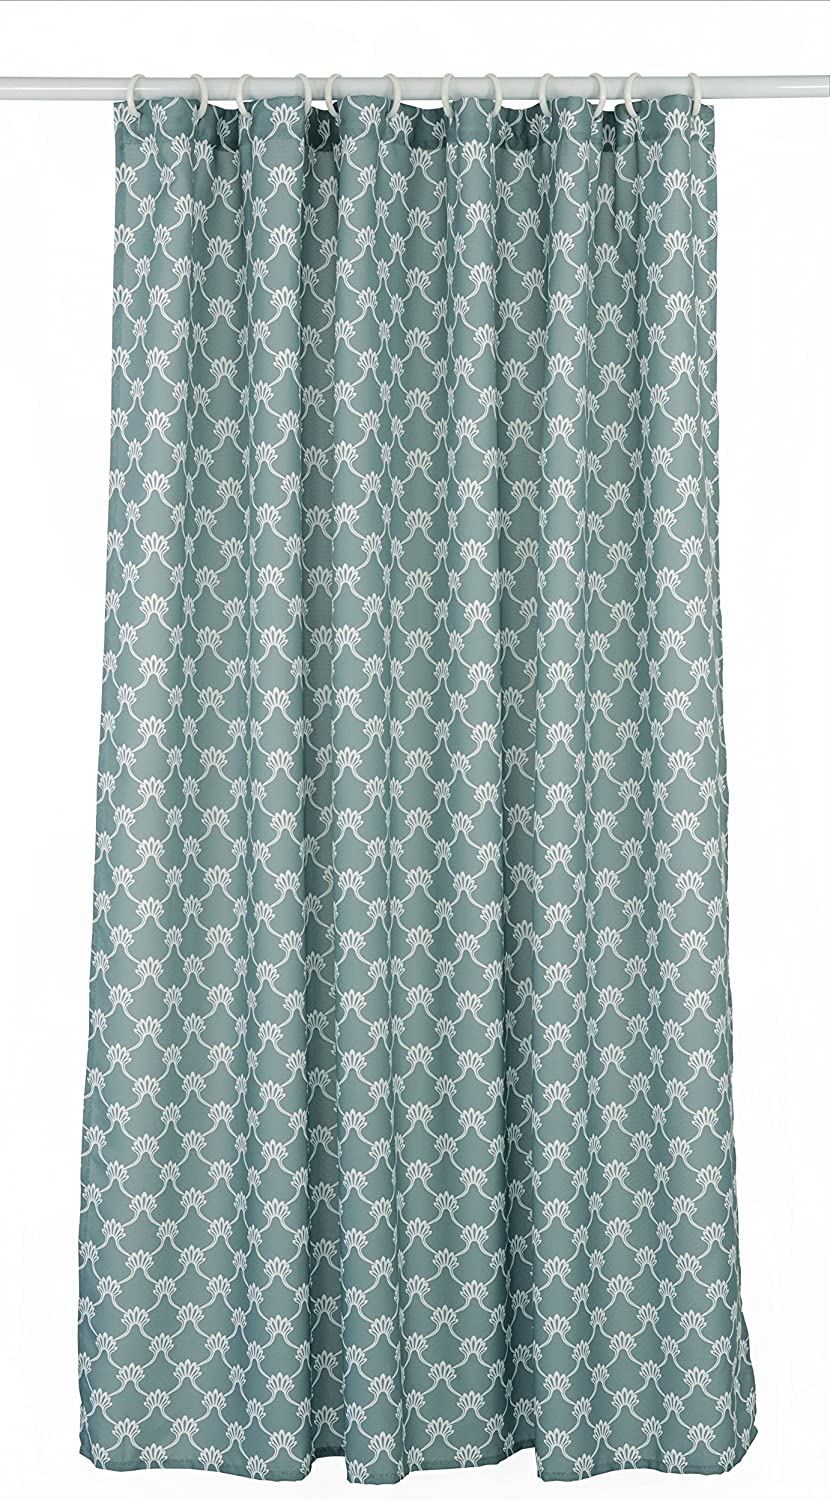 LJ Home Fashions 288 Manhattan Geometric Trellis Designed Shower Curtain Liner and Ring Set (14 Pieces) Grey/White